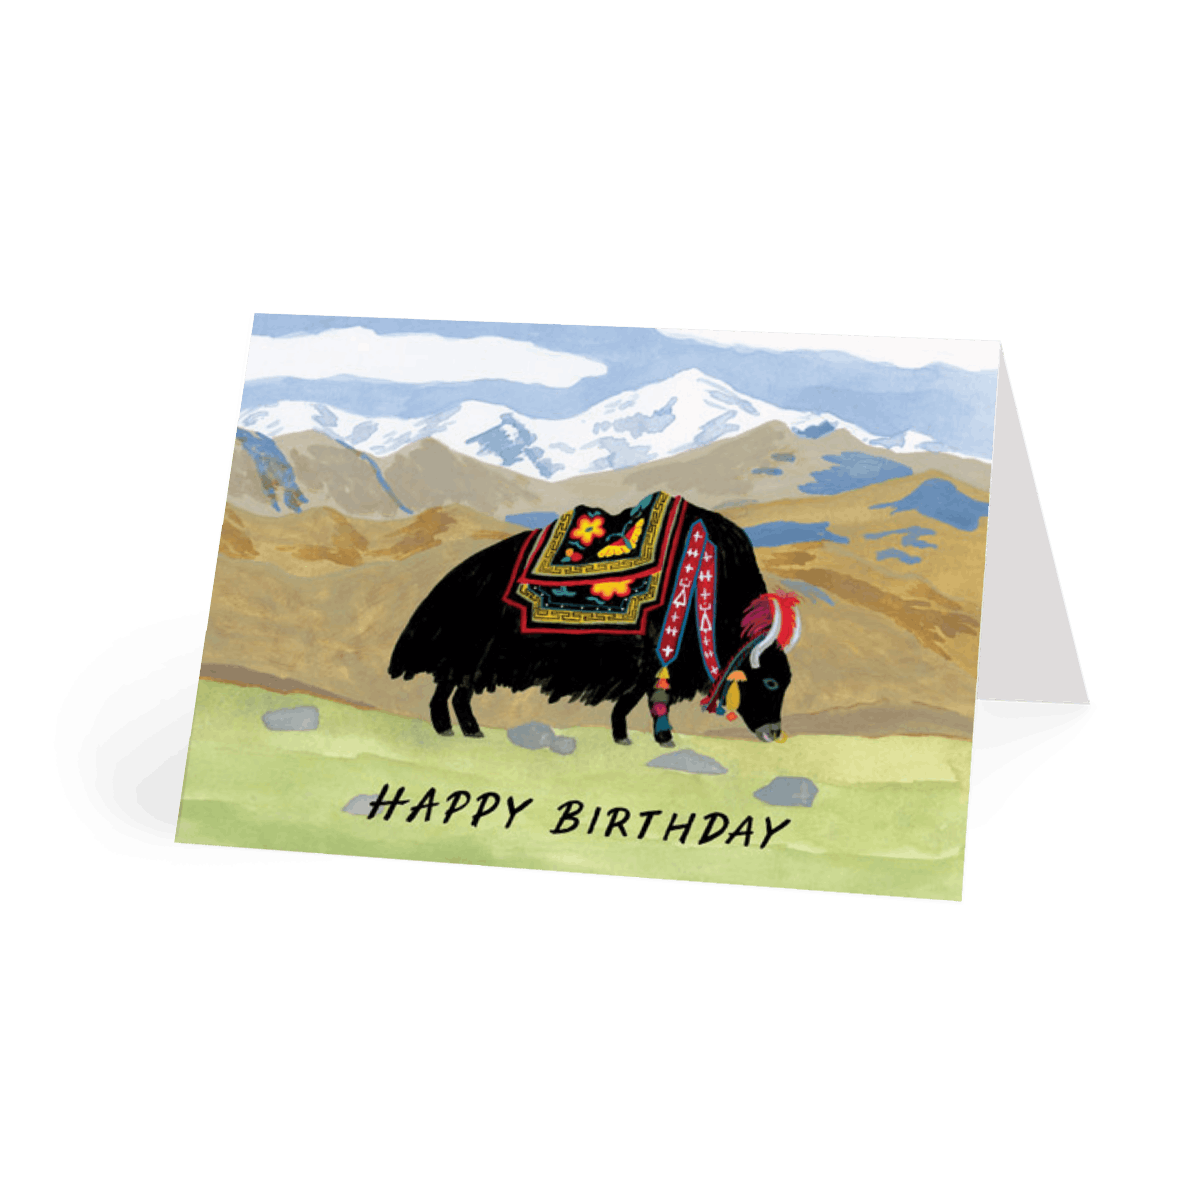 Https%3a%2f%2fwww.papier.com%2fproduct image%2f16951%2f14%2fyak birthday 4459 front 1485280460.png?ixlib=rb 1.1